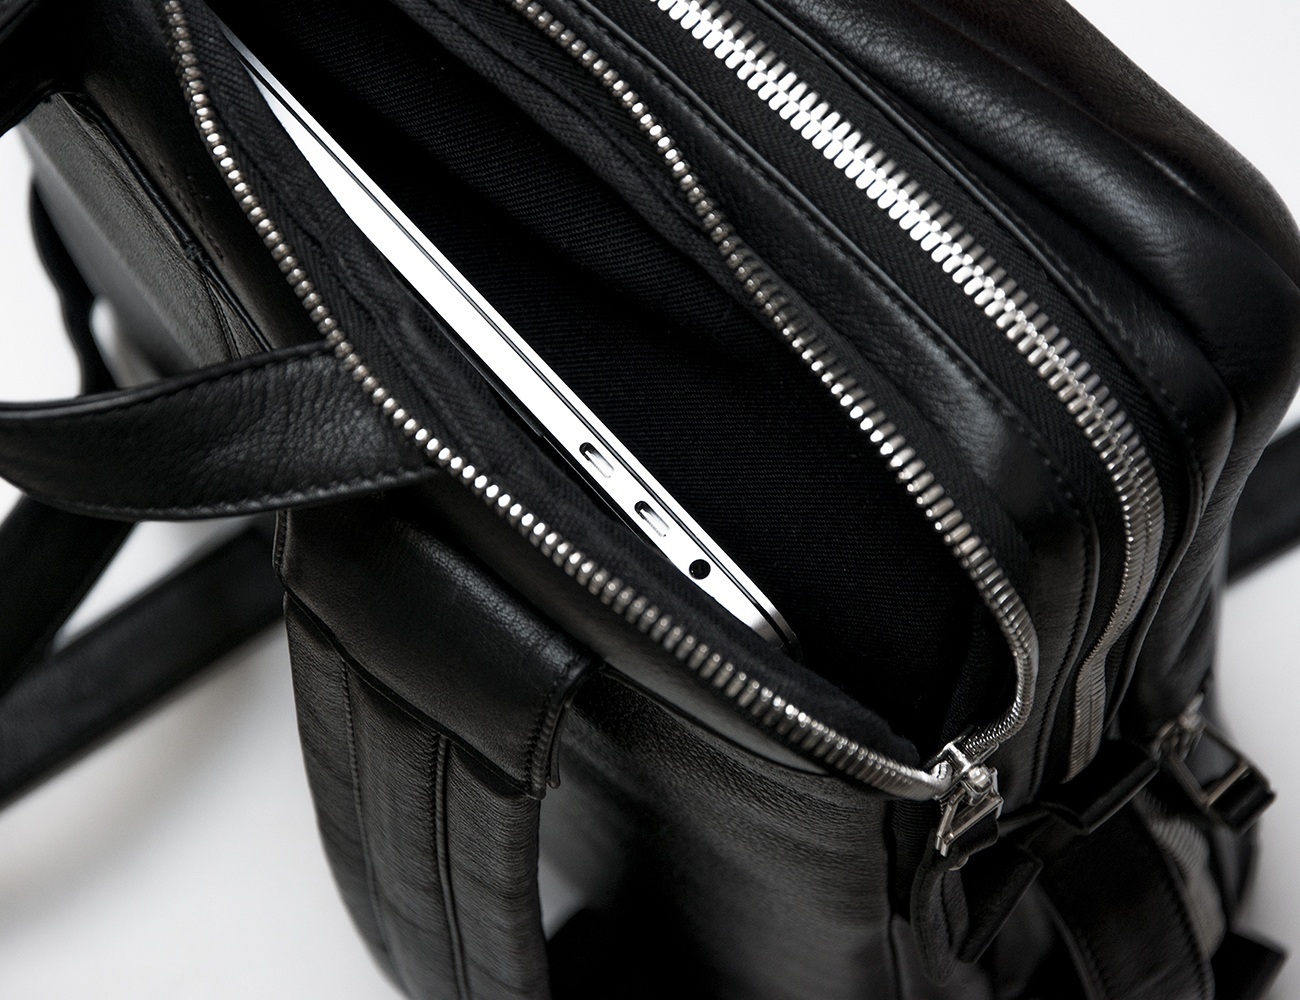 Otenteko Modern Minimalist Leather Backpacks 187 Gadget Flow